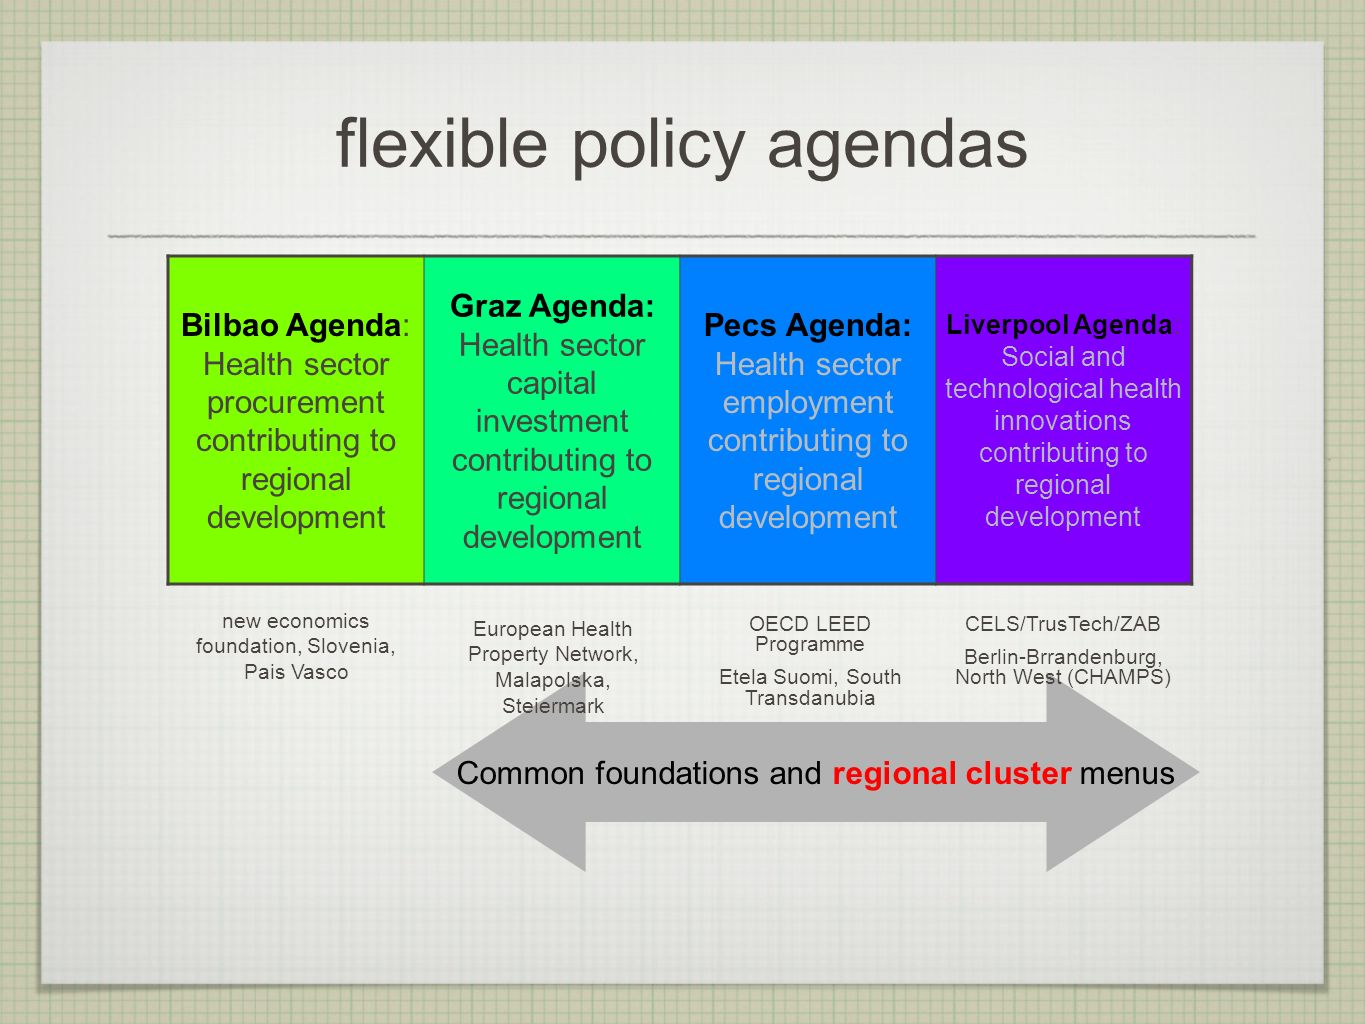 flexible policy agendas Bilbao Agenda: Health sector procurement contributing to regional development Graz Agenda: Health sector capital investment co